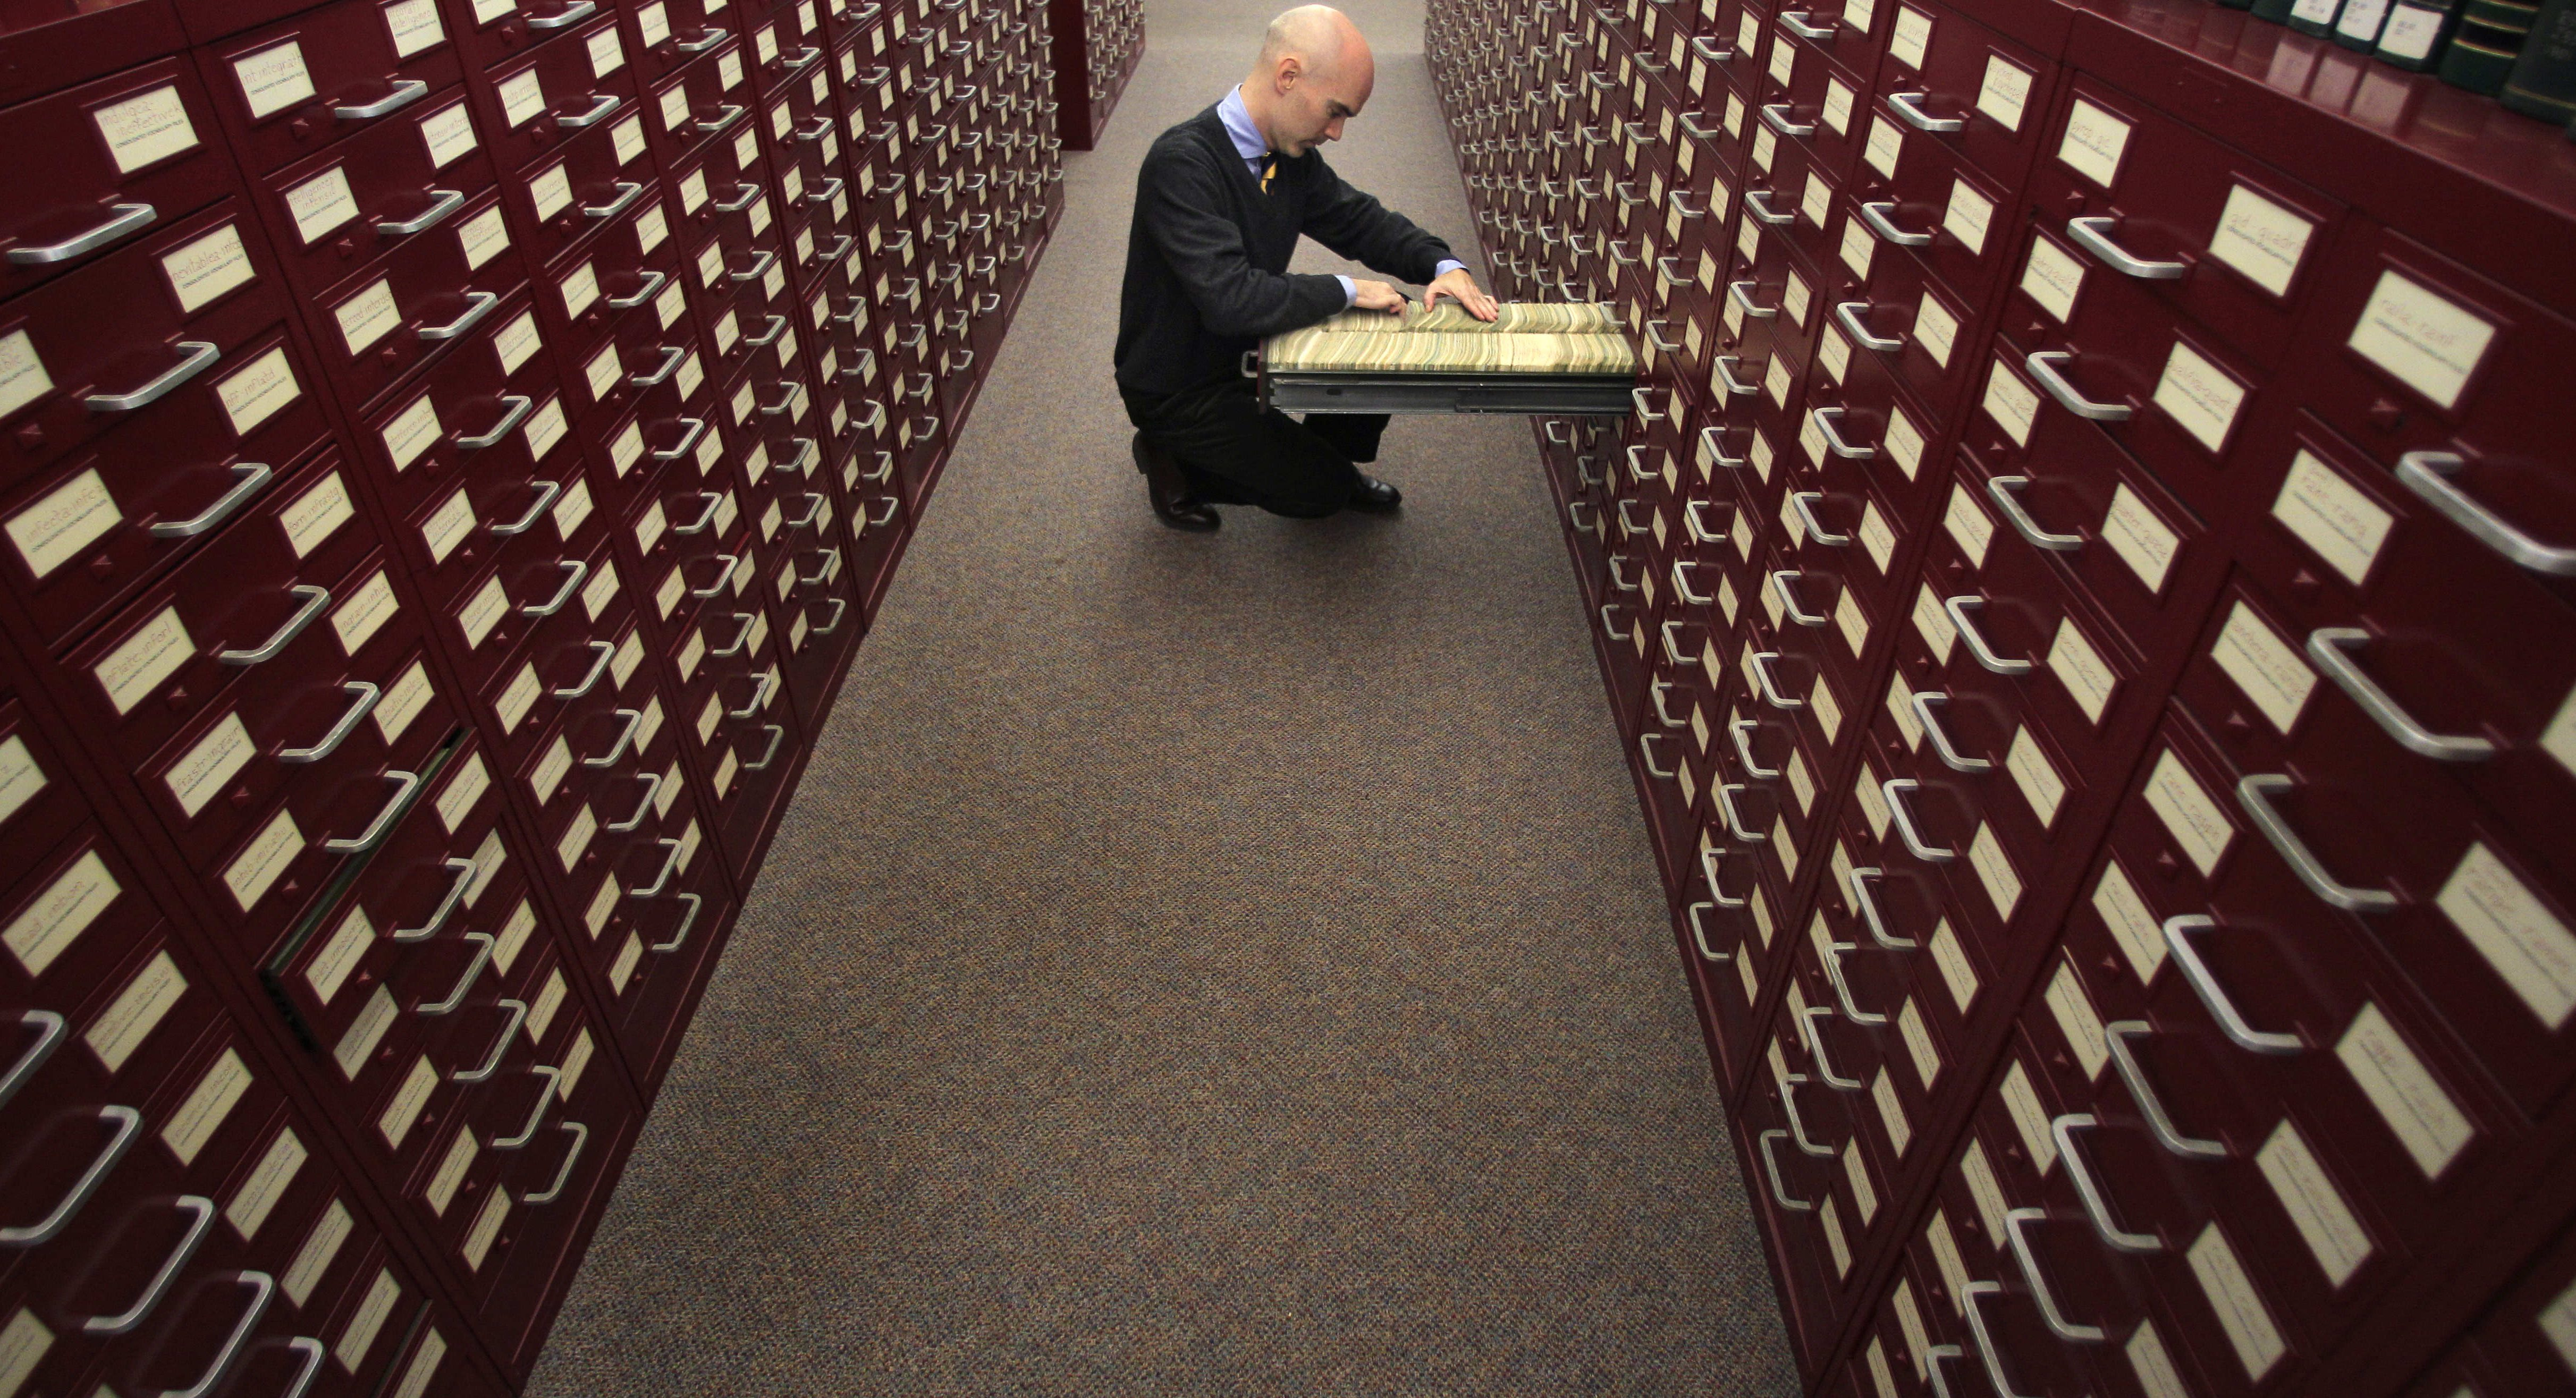 """In this Tuesday, Dec. 14, 2010 photo, Peter Sokolowski, editor at large for Merriam-Webster Inc., thumbs through the index card files at the dictionary publisher, in Springfield, Mass. Merriam-Webster has chosen """"austerity"""" as its 2010 Word of the Year. (AP Photo/Charles Krupa)"""